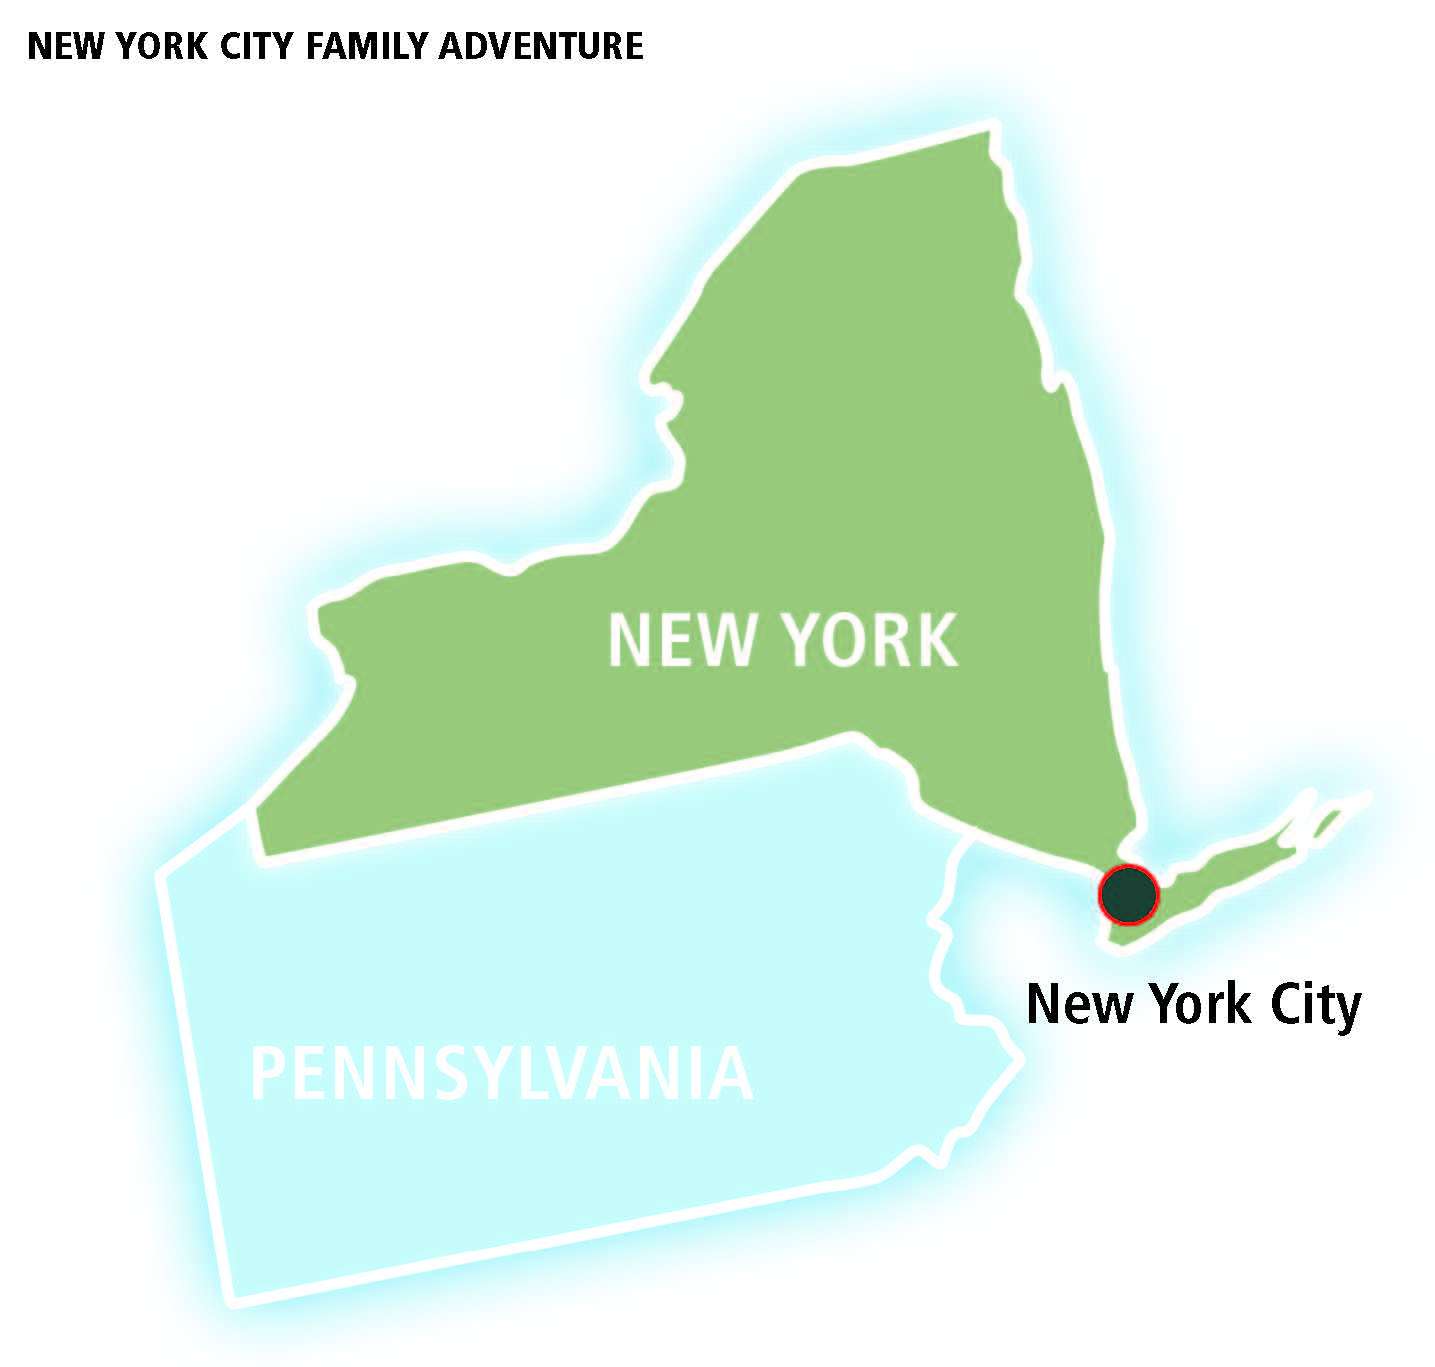 New york city family adventure amtrak vacations official for New york city tours for families